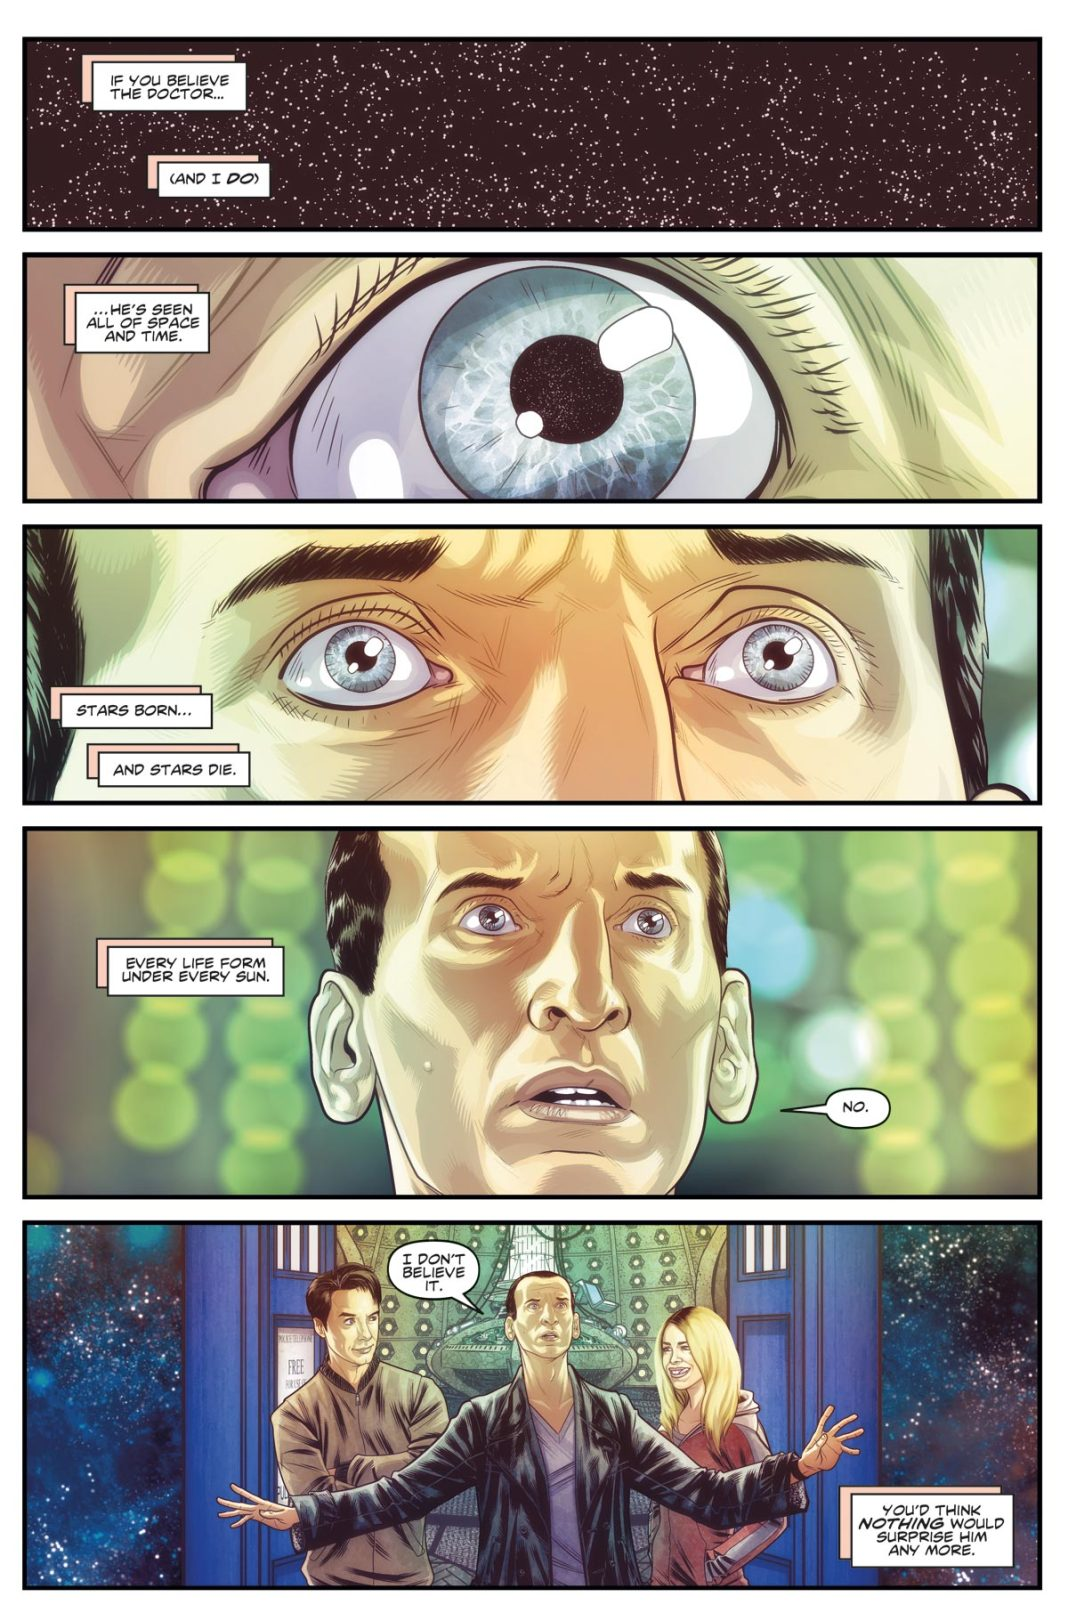 DOCTOR WHO THE NINTH DOCTOR VOL. 1: WEAPONS OF PAST DESTRUCTION - Preview 1